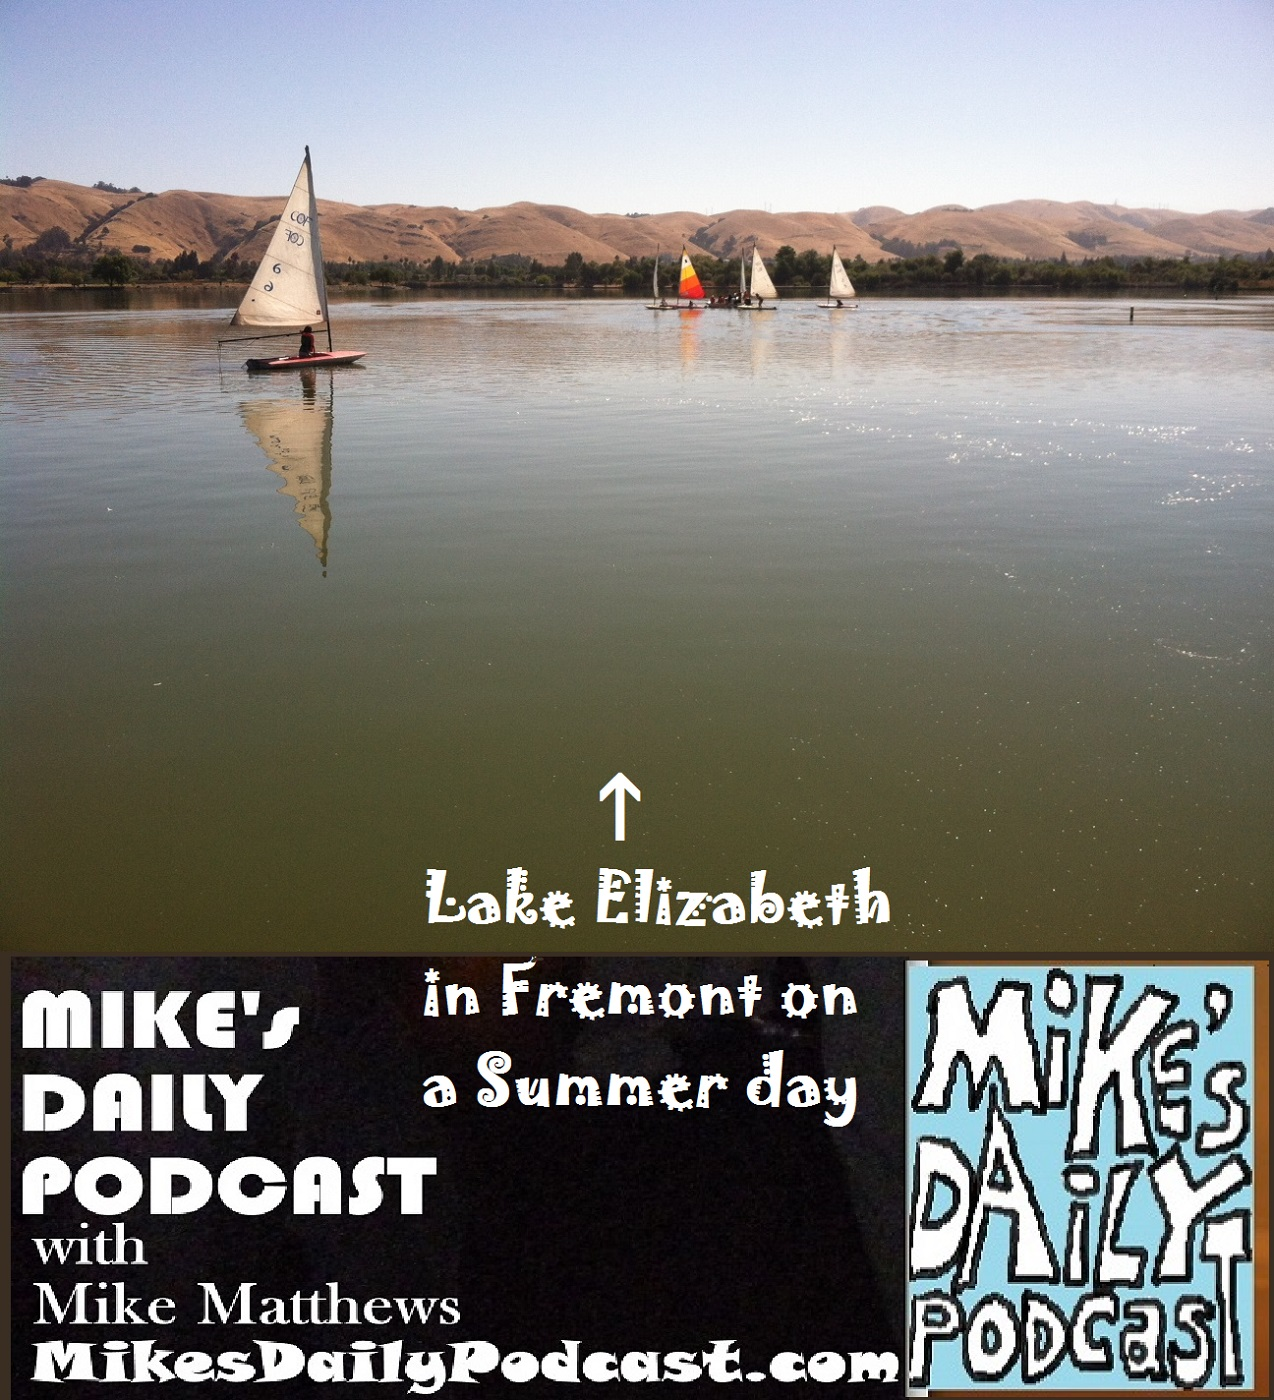 MIKEs DAILY PODCAST 1141 Lake Elizabeth sailboats